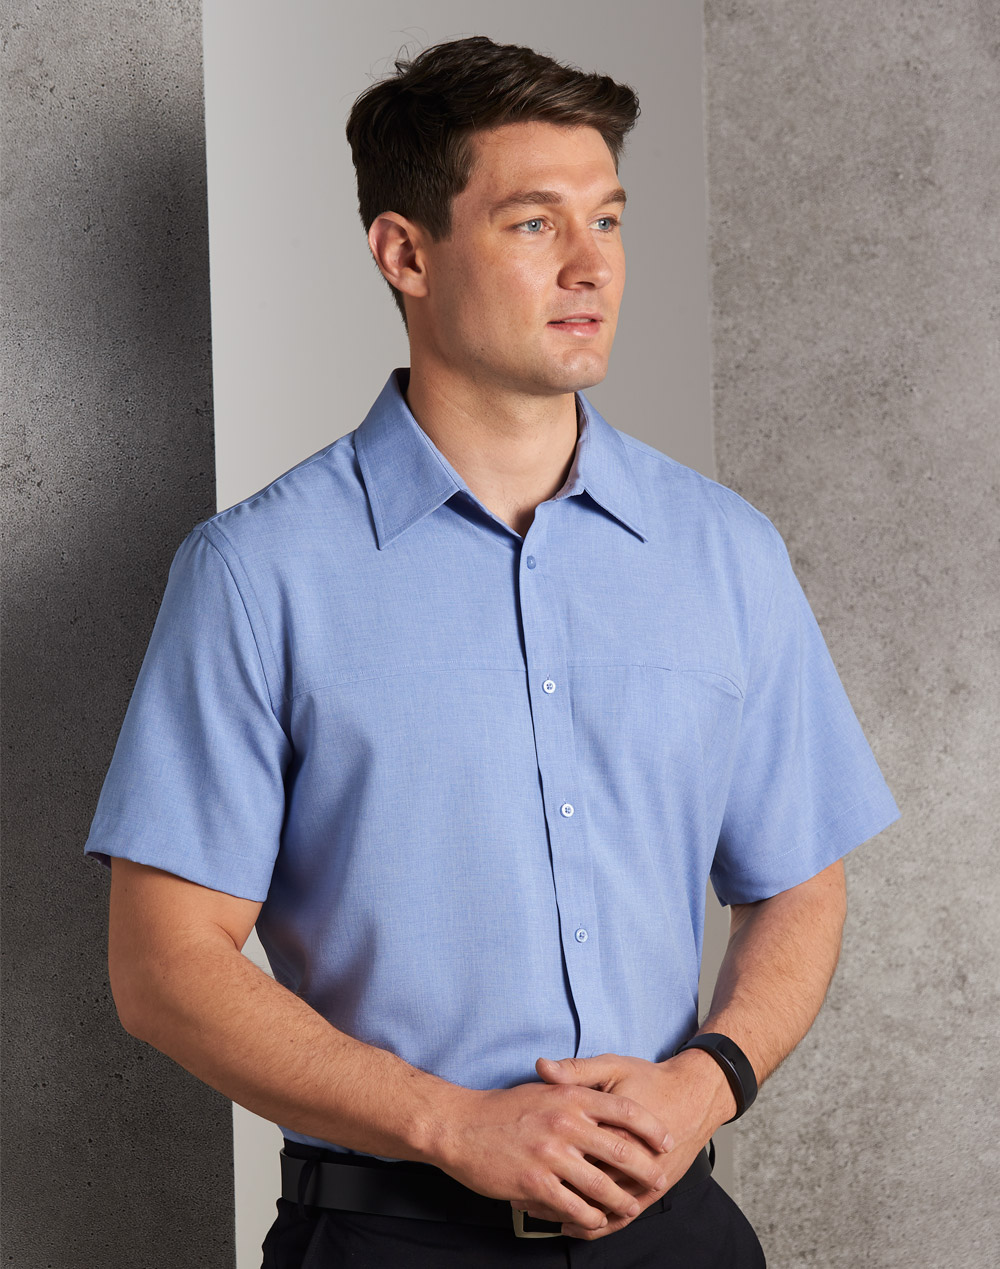 M7600S Men's CoolDry Short Sleeve Shirt